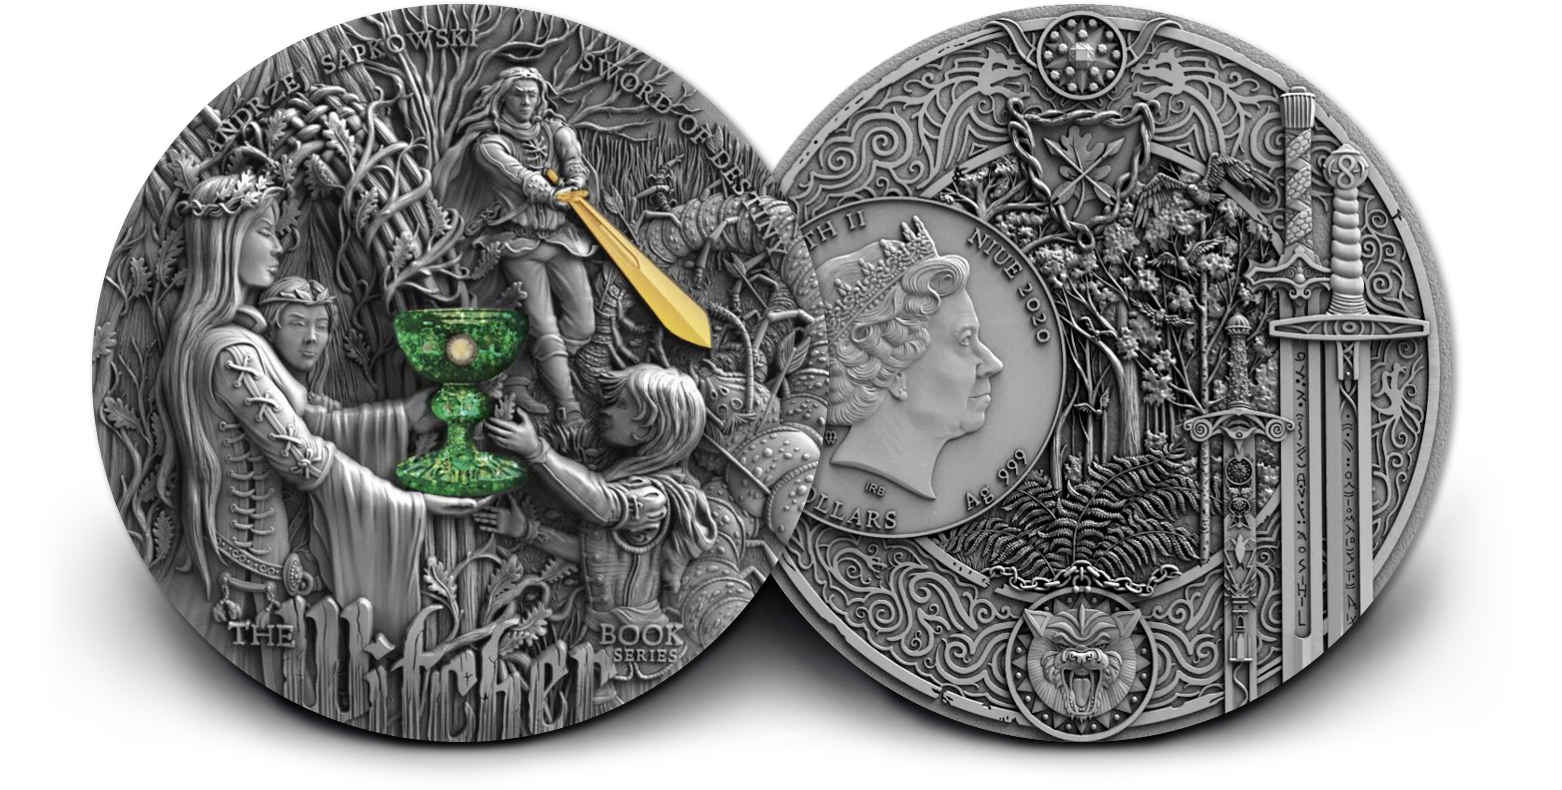 2020 The Witcher Sword of Destiny 2 oz Silver Coin